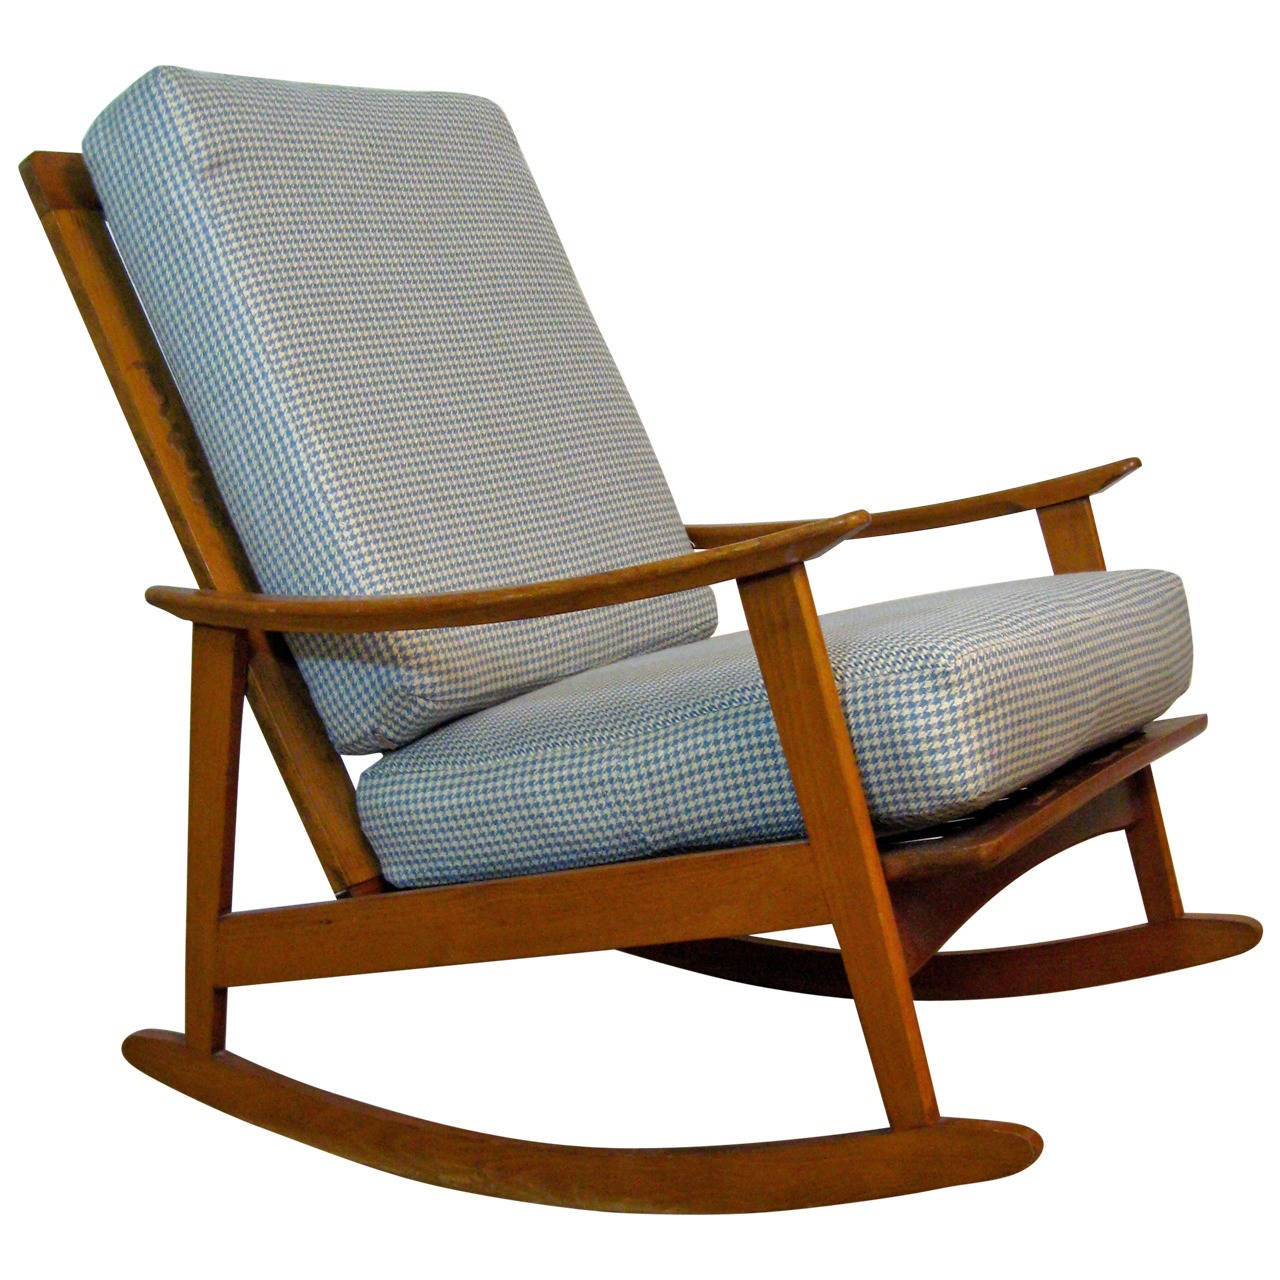 Mid century modern rocking chair for sale at 1stdibs for Rocking chair